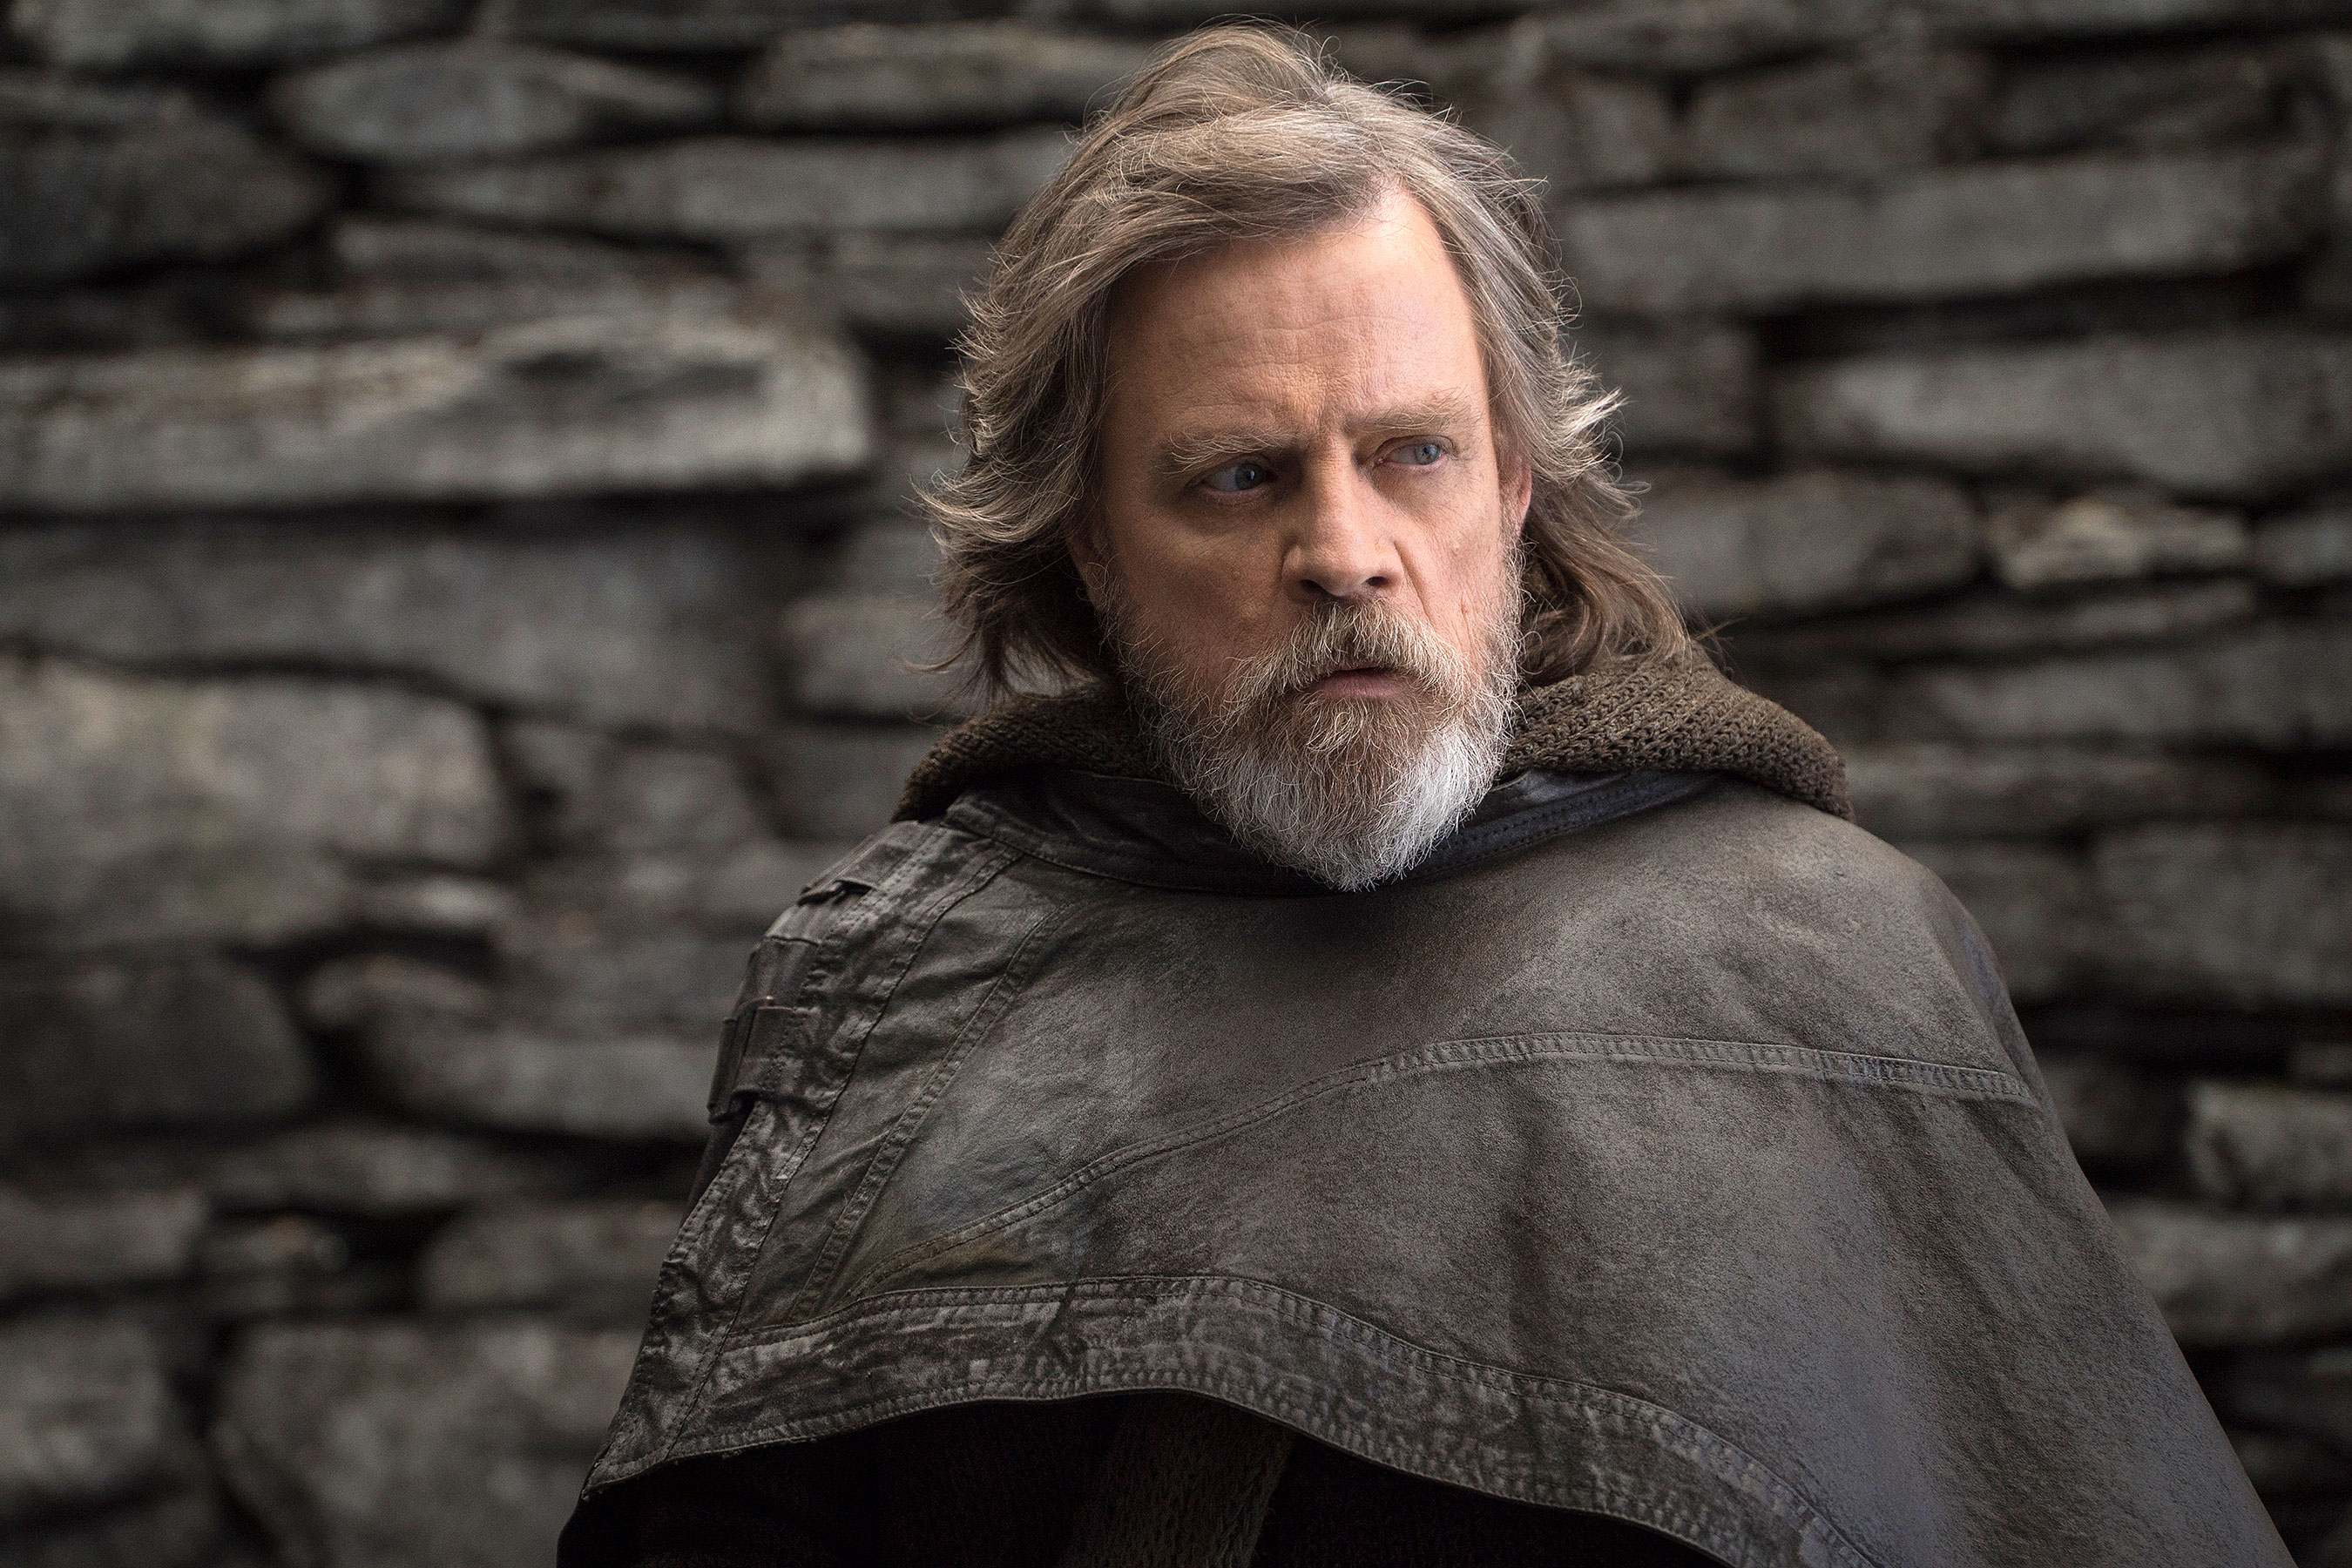 Luke Skywalker In Star Wars The Last Jedi Hd Movies 4k Wallpapers Images Backgrounds Photos And Pictures